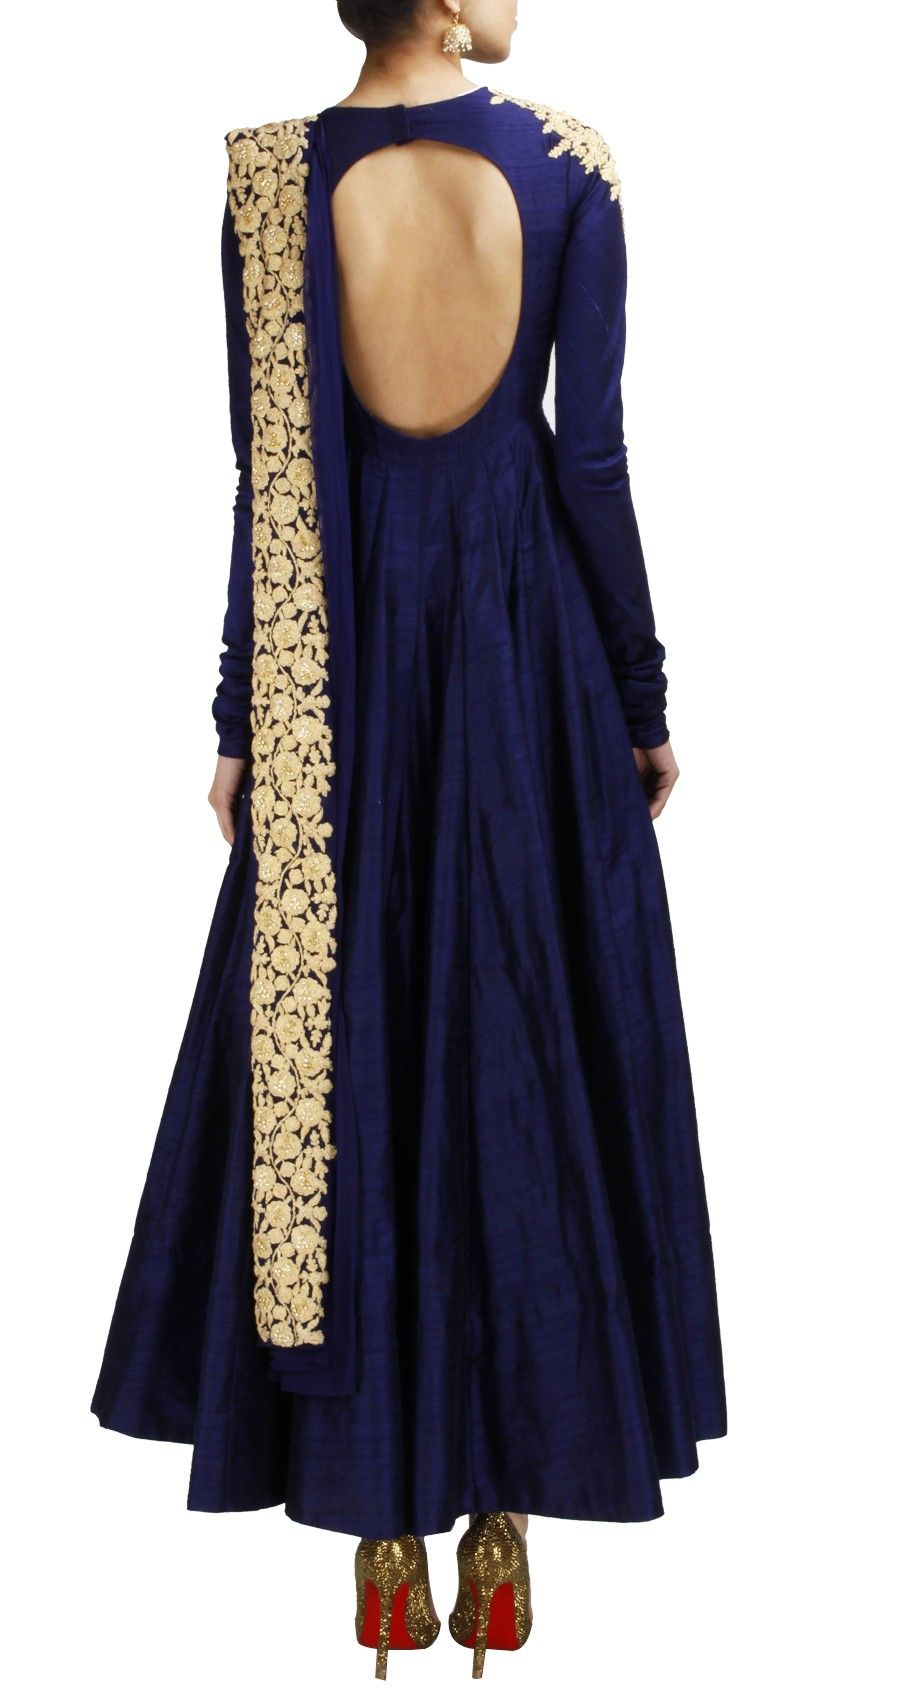 eaac965a28 Navy blue raw silk anarkali with gold embroidery on draped dupatta, waist  and shoulder. Deep back of around 14 inches.